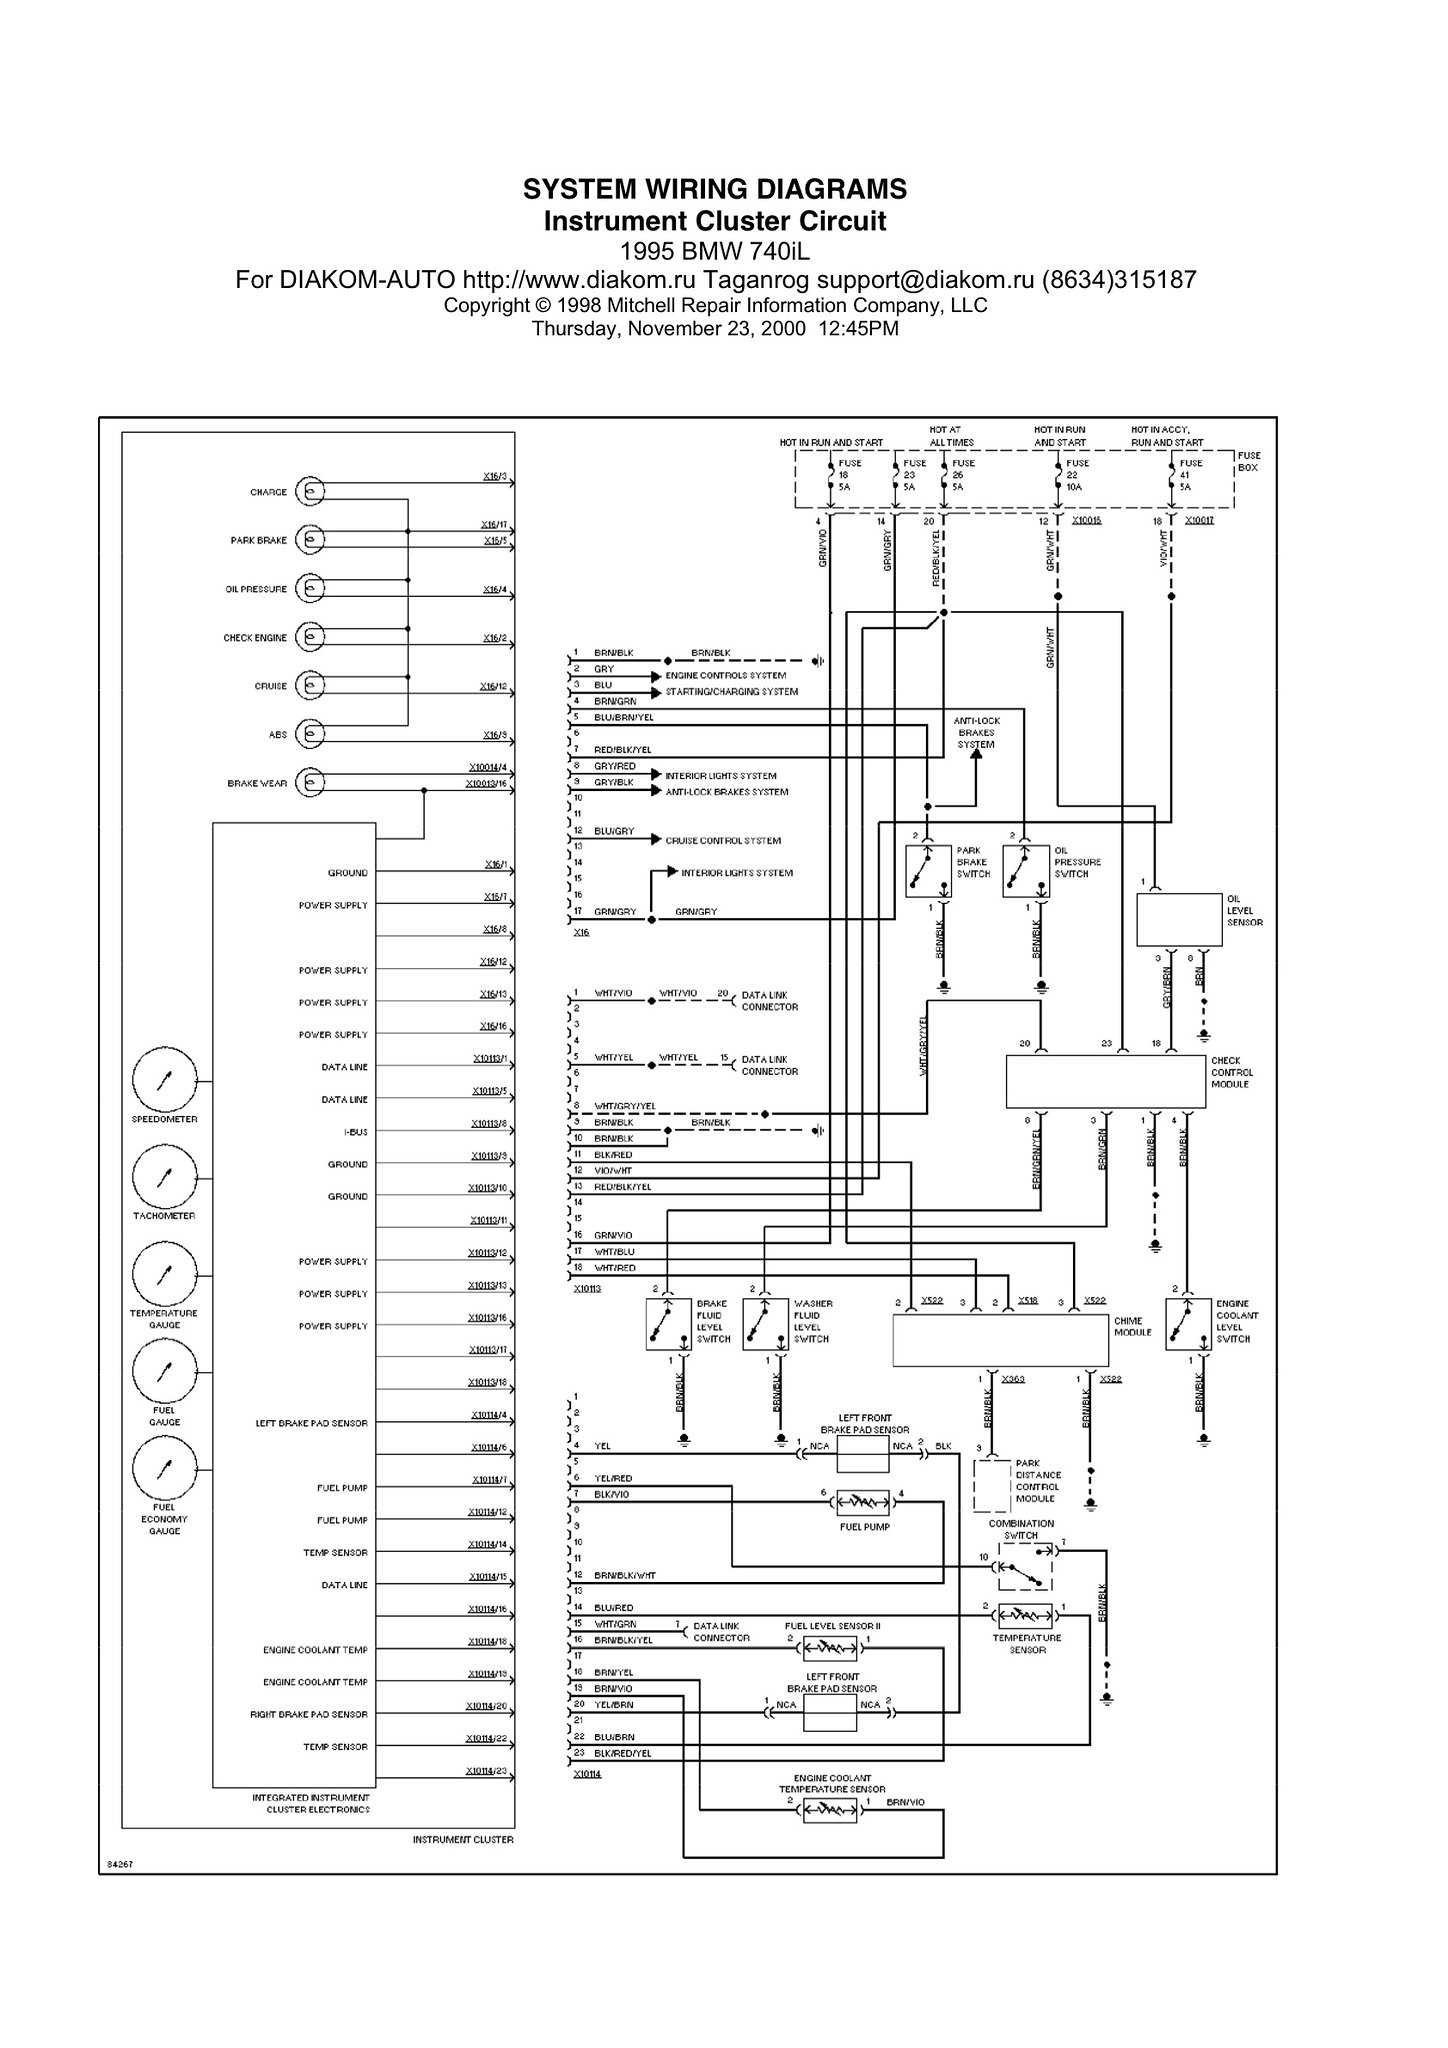 7703585142_dbc4ceb414_k bmw e38 wiring diagram bmw e38 manual \u2022 wiring diagrams j squared co 2001 BMW X5 Interior Diagram at soozxer.org